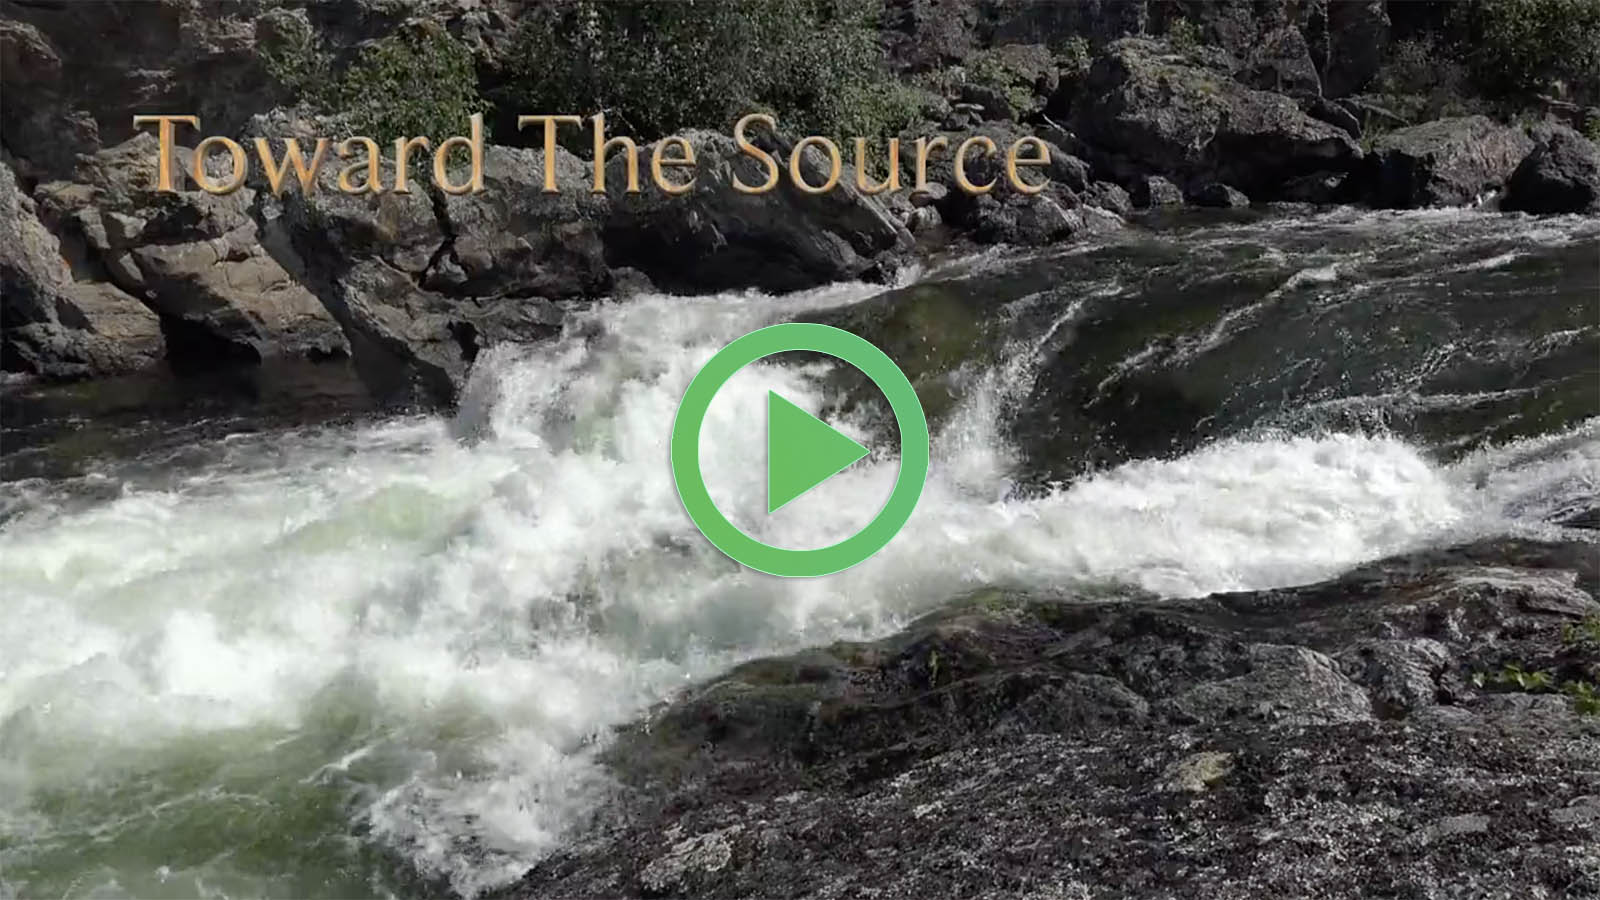 Toward the Source - Norton Smith, Talent OR